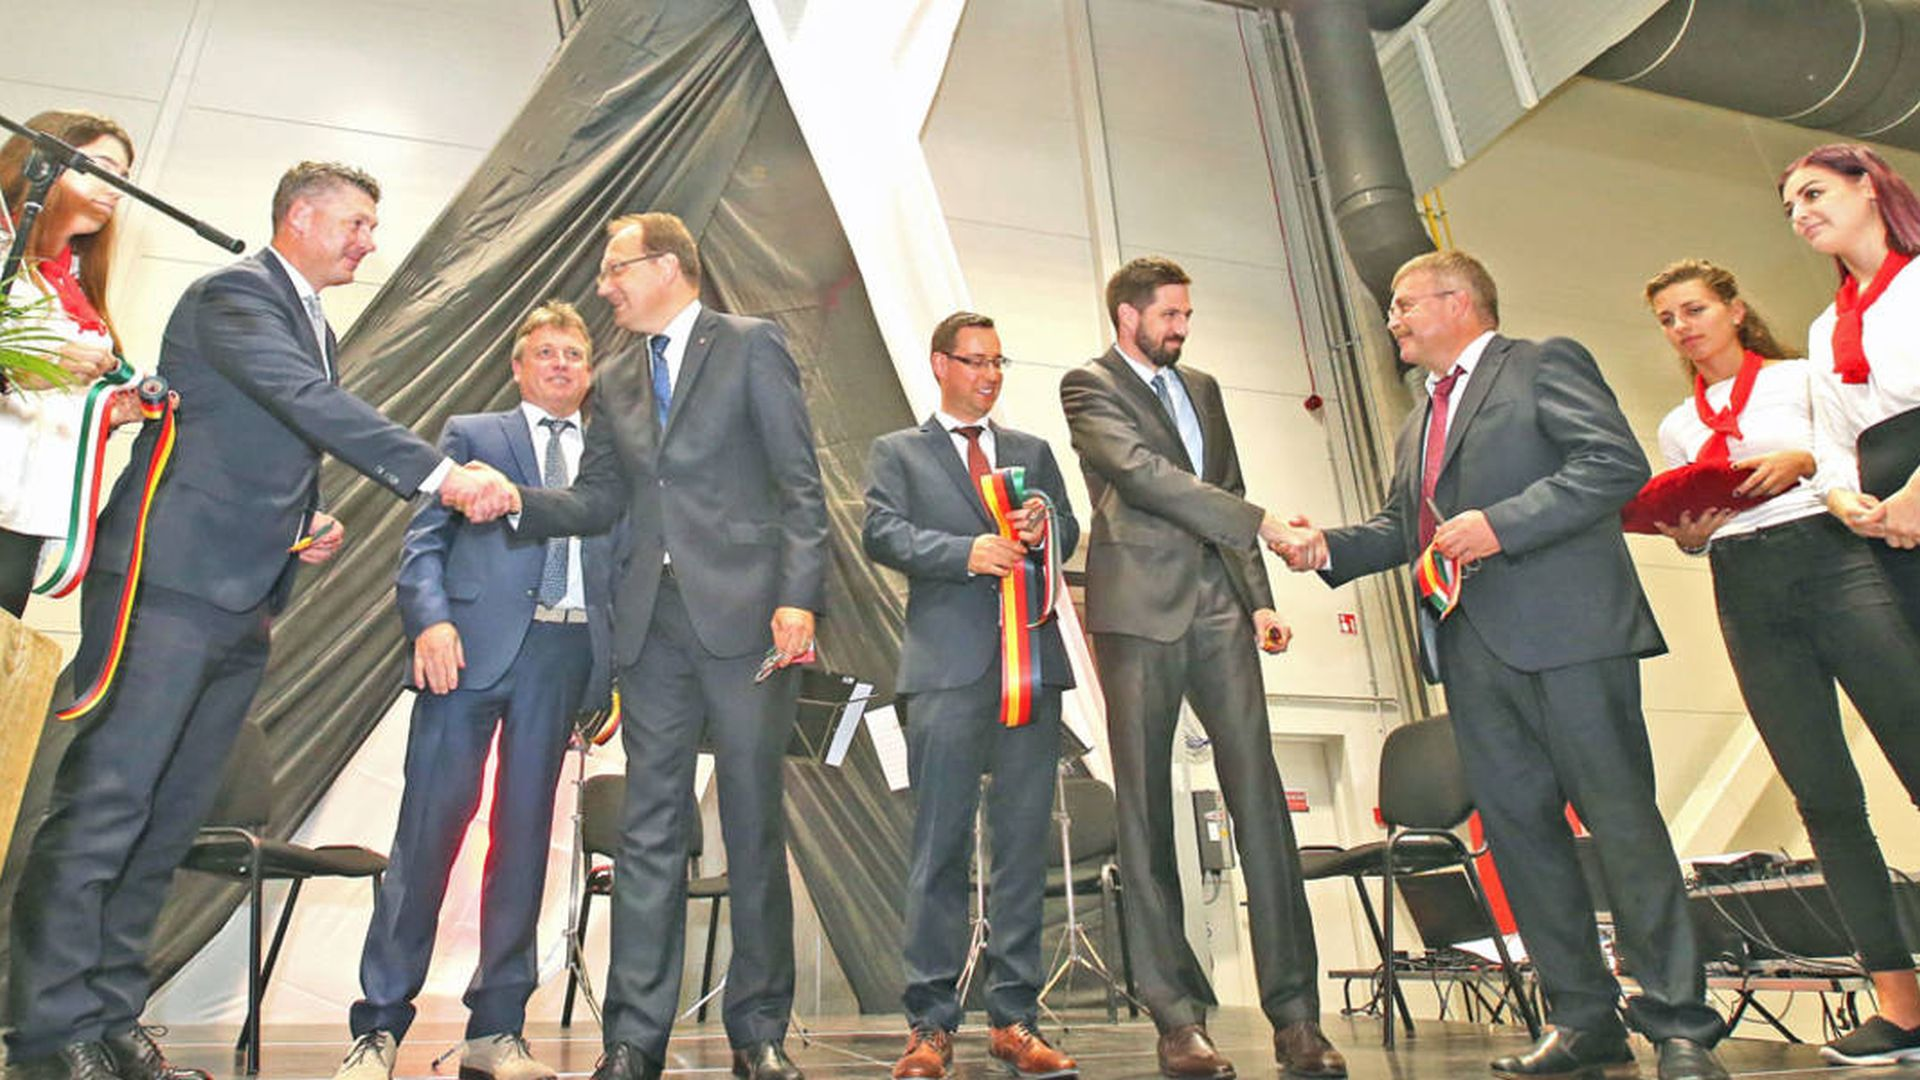 Honsa has become market leader thanks to its 20 years old plant in Pécs